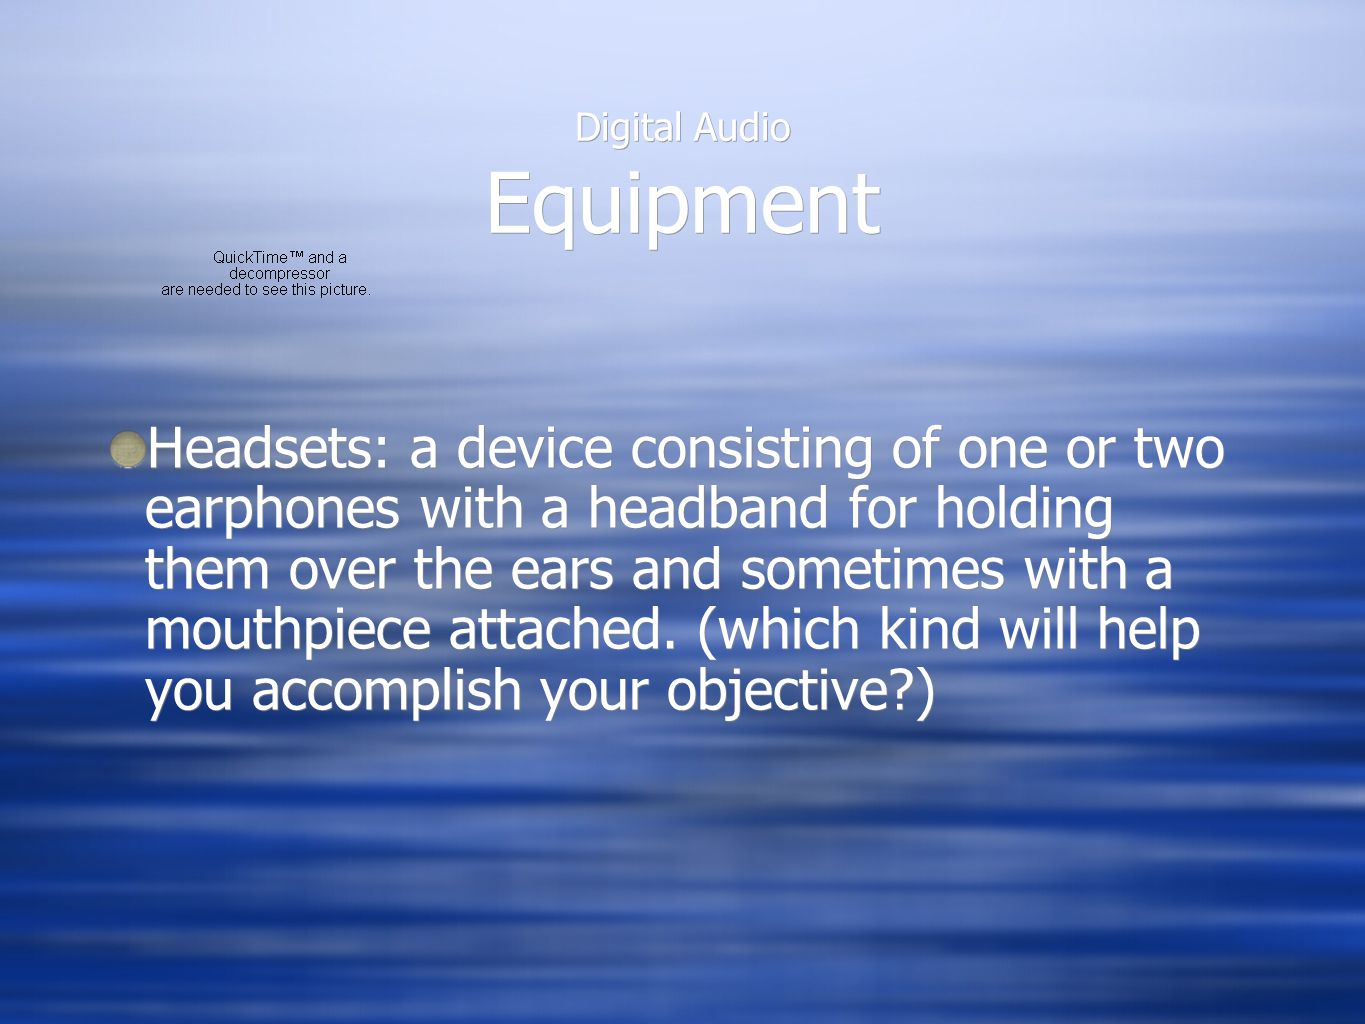 Digital Audio Equipment Headsets: a device consisting of one or two earphones with a headband for holding them over the ears and sometimes with a mout